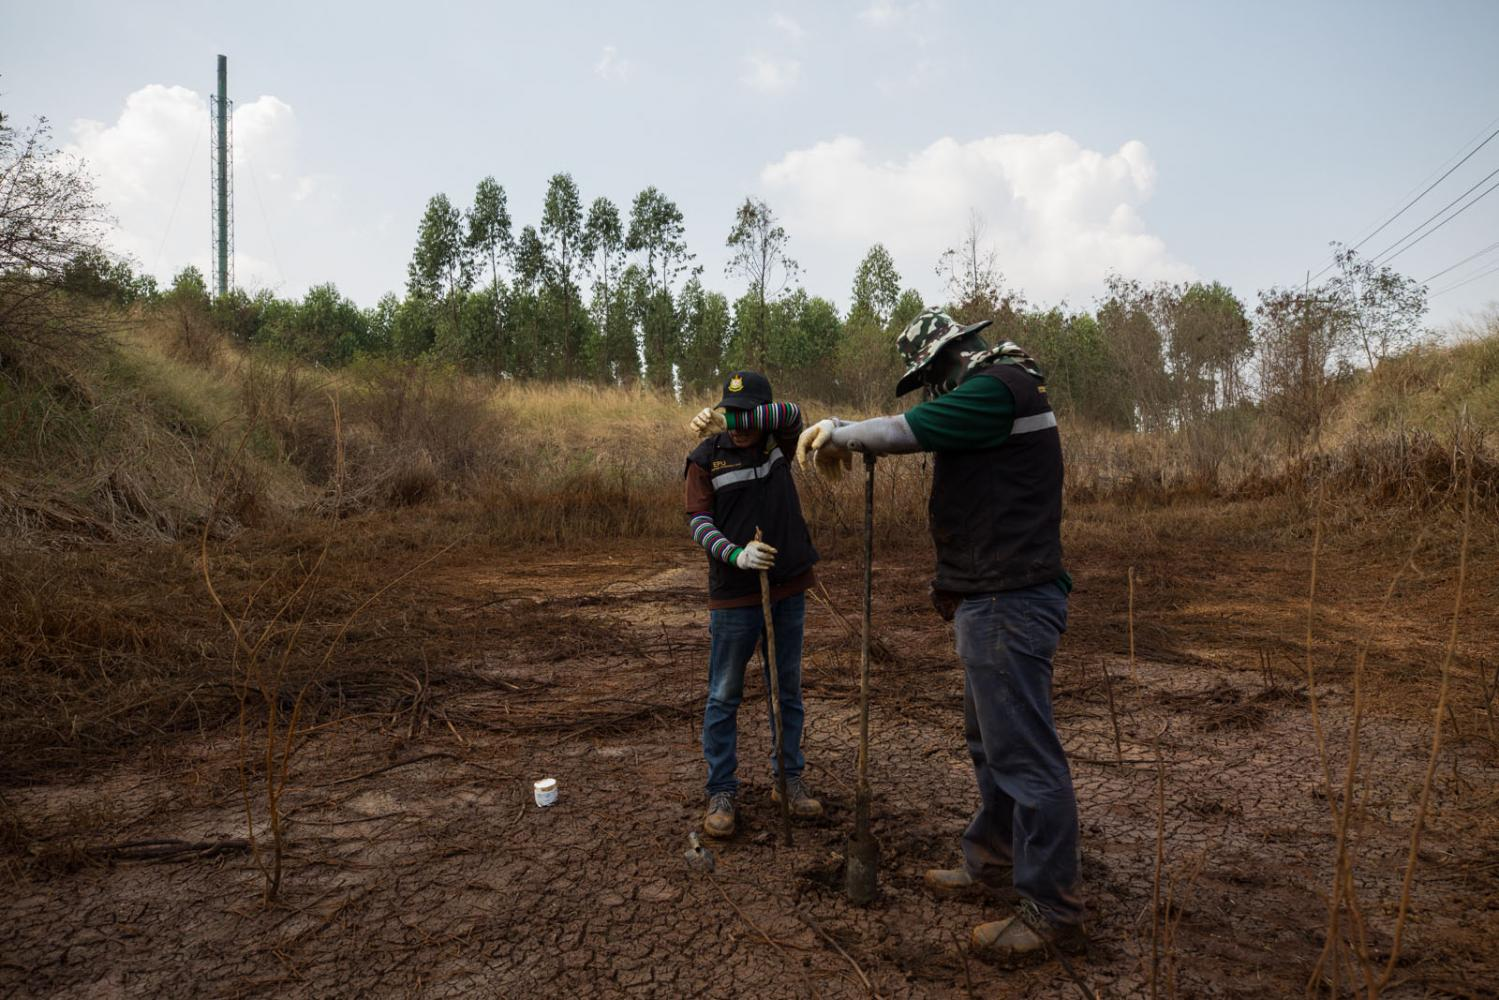 The Thai Environmental Agency collects soil samples at a polluted site to find out where the polluting comes from. Chachoegnsao, Thailand.